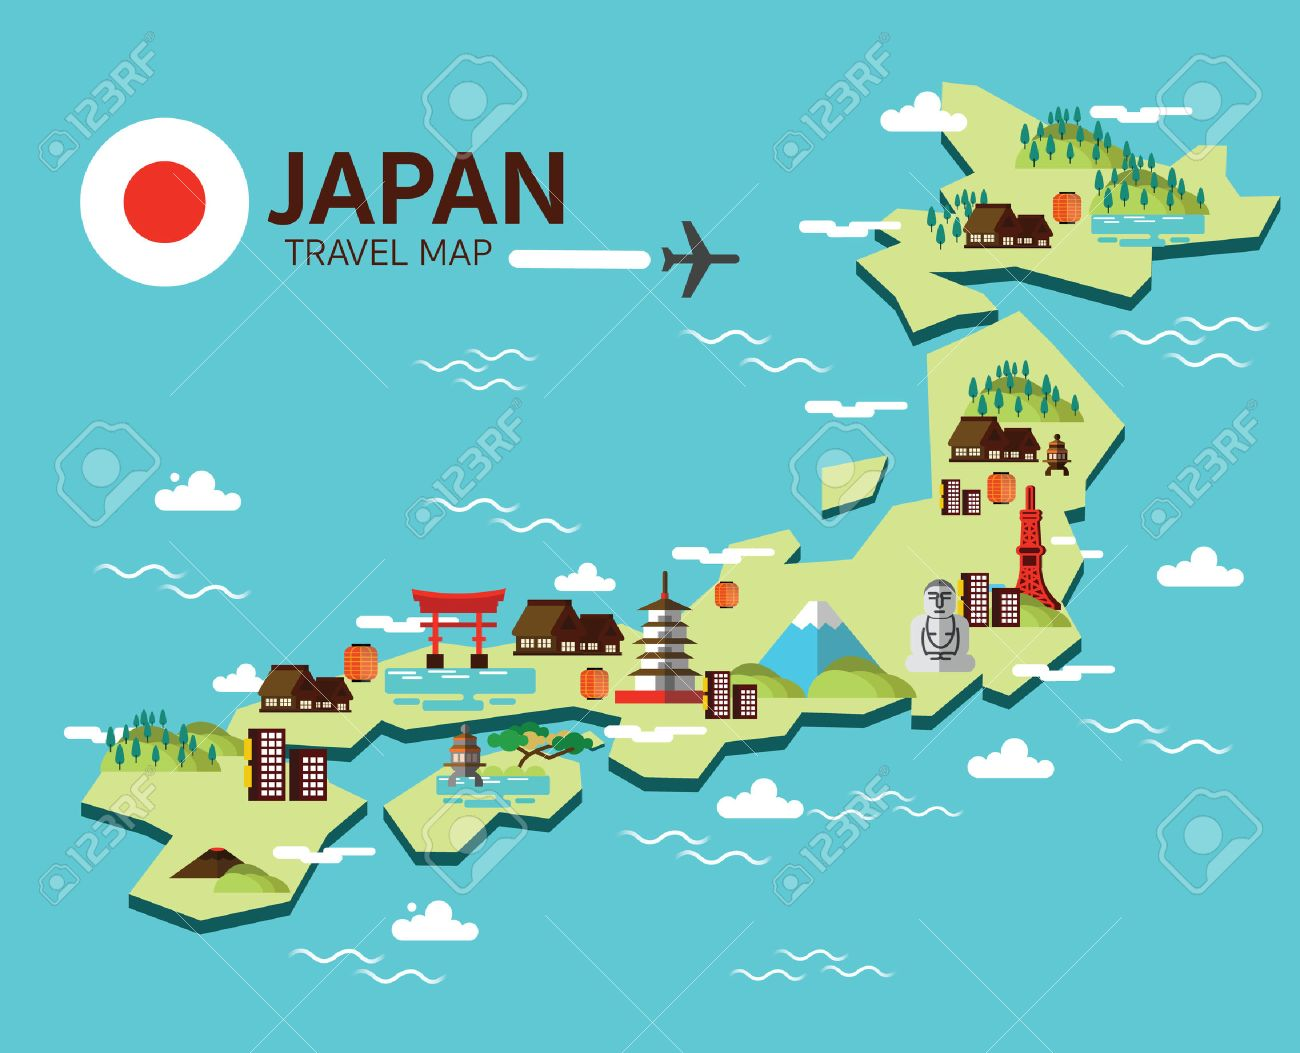 Japan Landmark And Travel Map Flat Design Elements And Icons - Japan map vector art